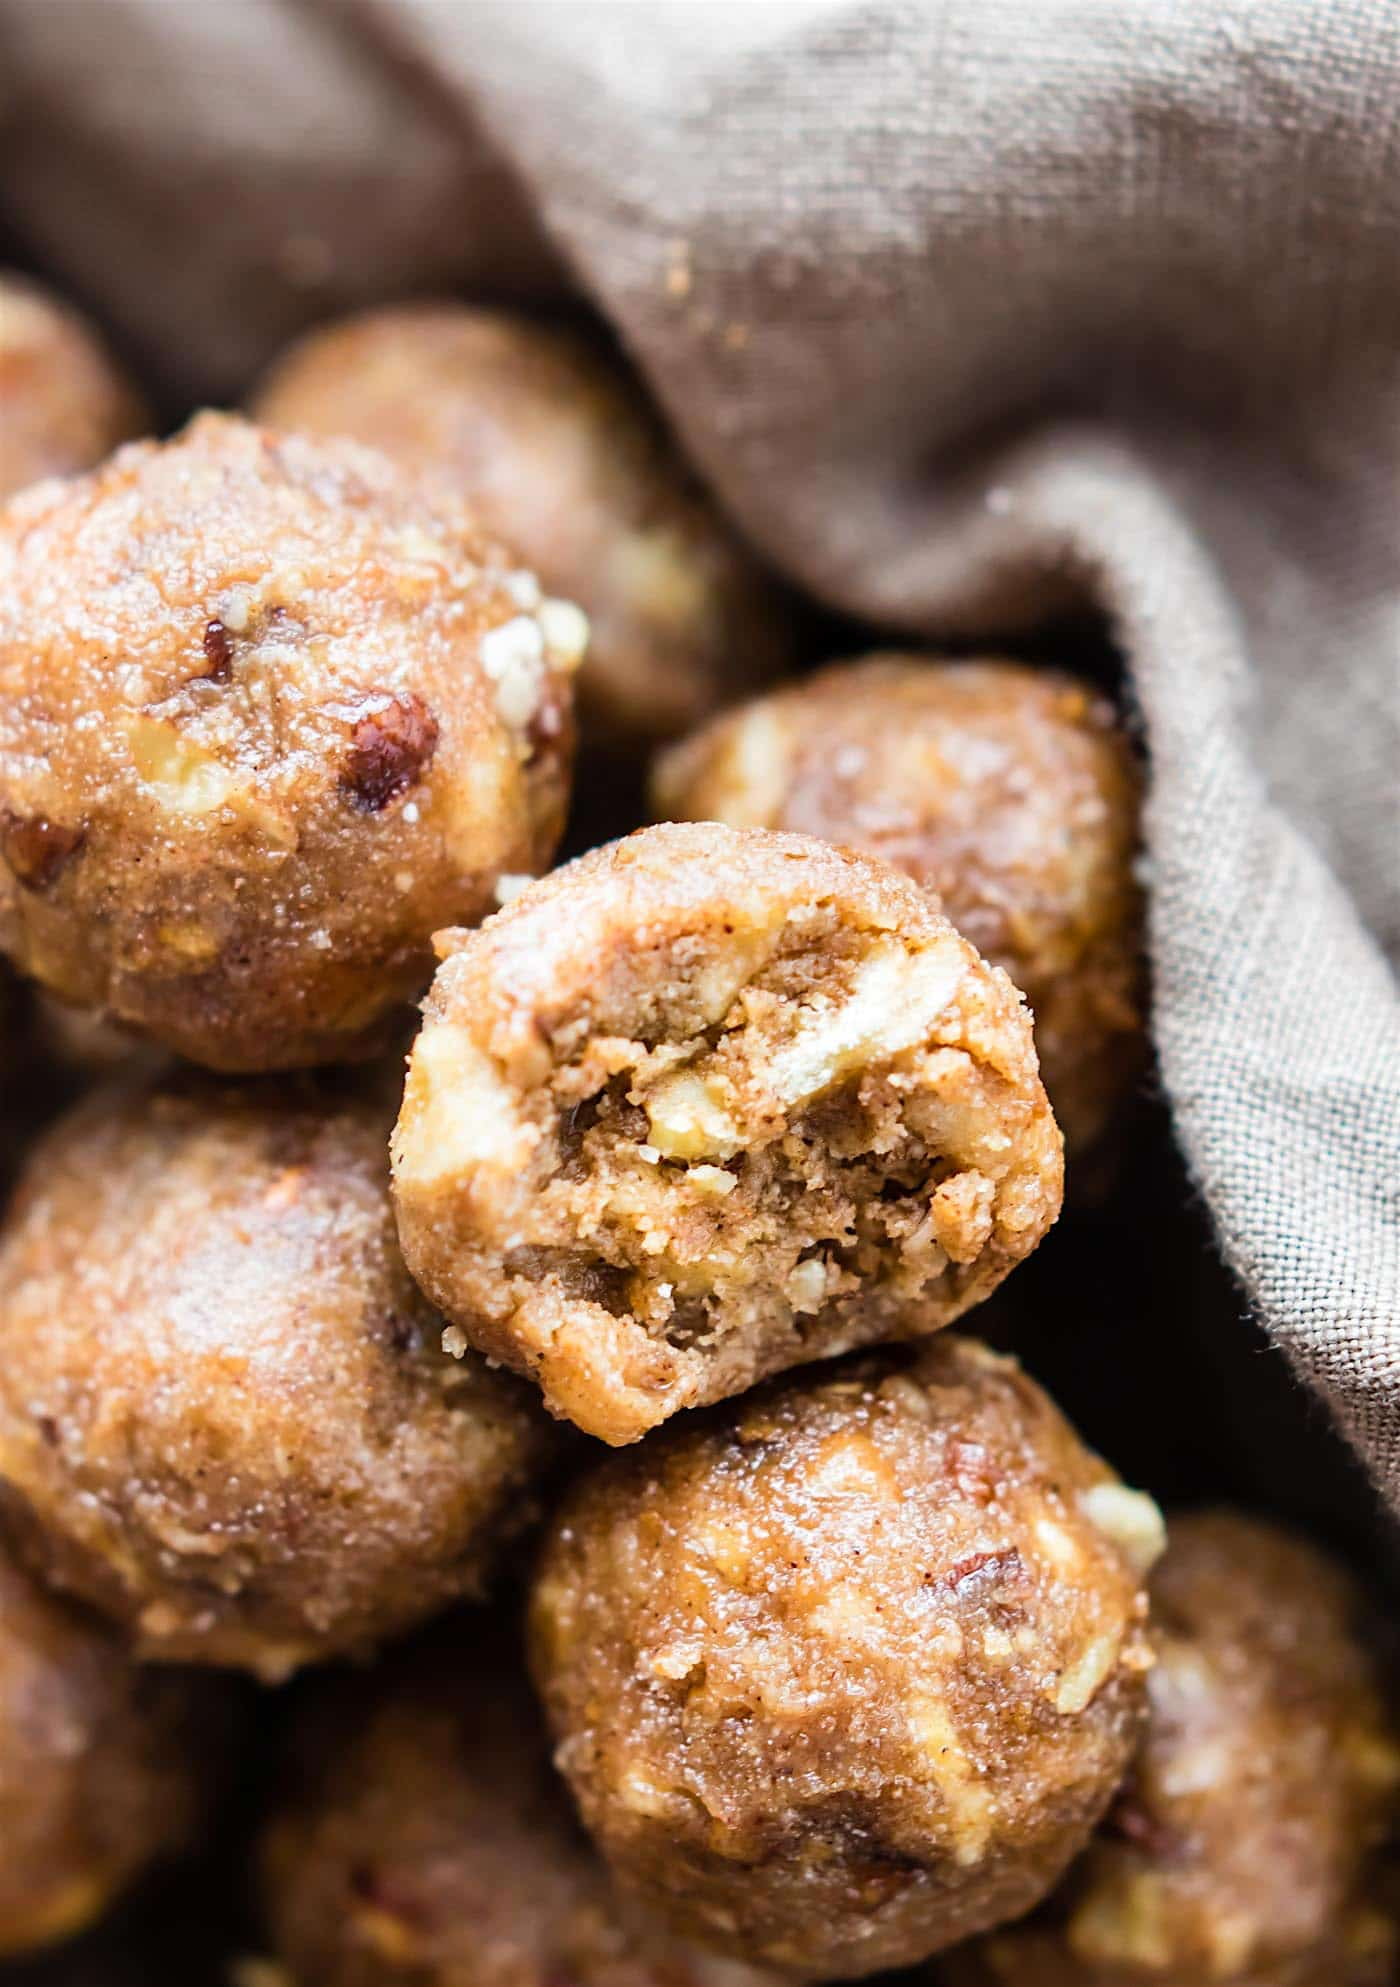 "These Bourbon Banana Bread bites make a delicious quick no bake dessert! A gluten free Bourbon Banana bread bites recipe with a little ""spike"" and seasonal spices. Whip them up for a holiday dessert or tasty snack ready in no time. Dairy free and non alcoholic Vegan option."